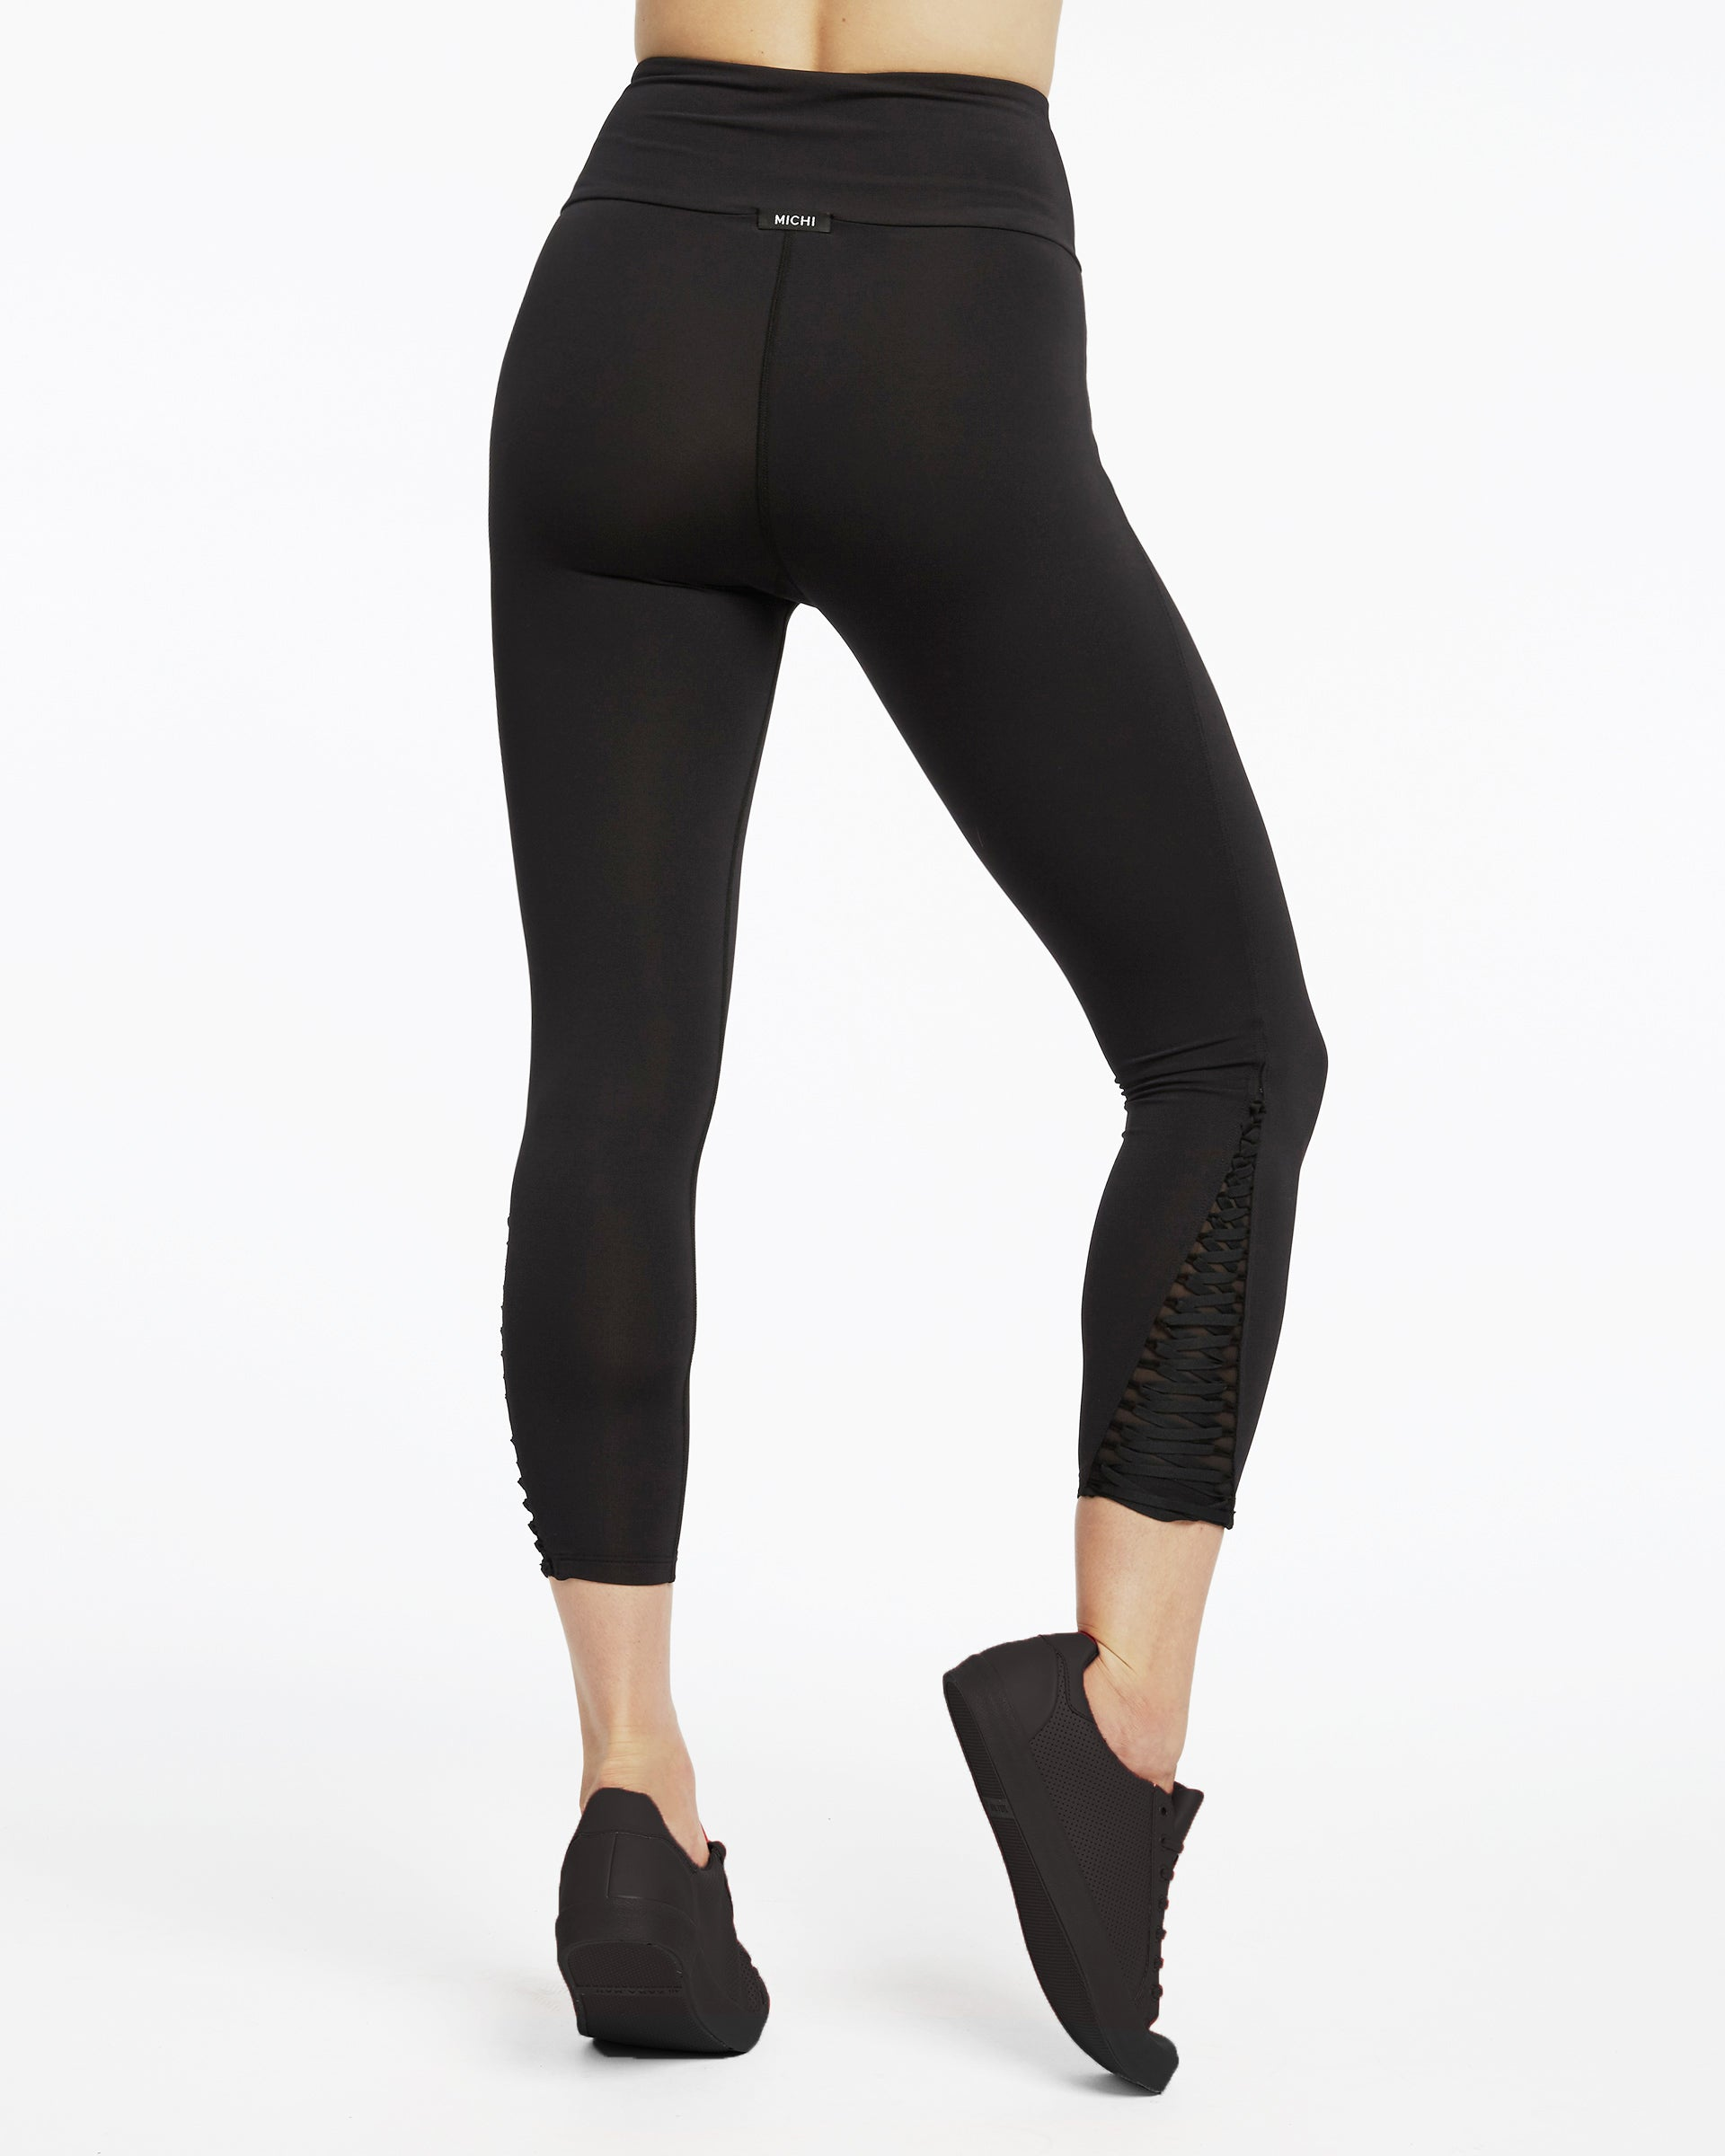 tempest-high-waisted-crop-legging-black